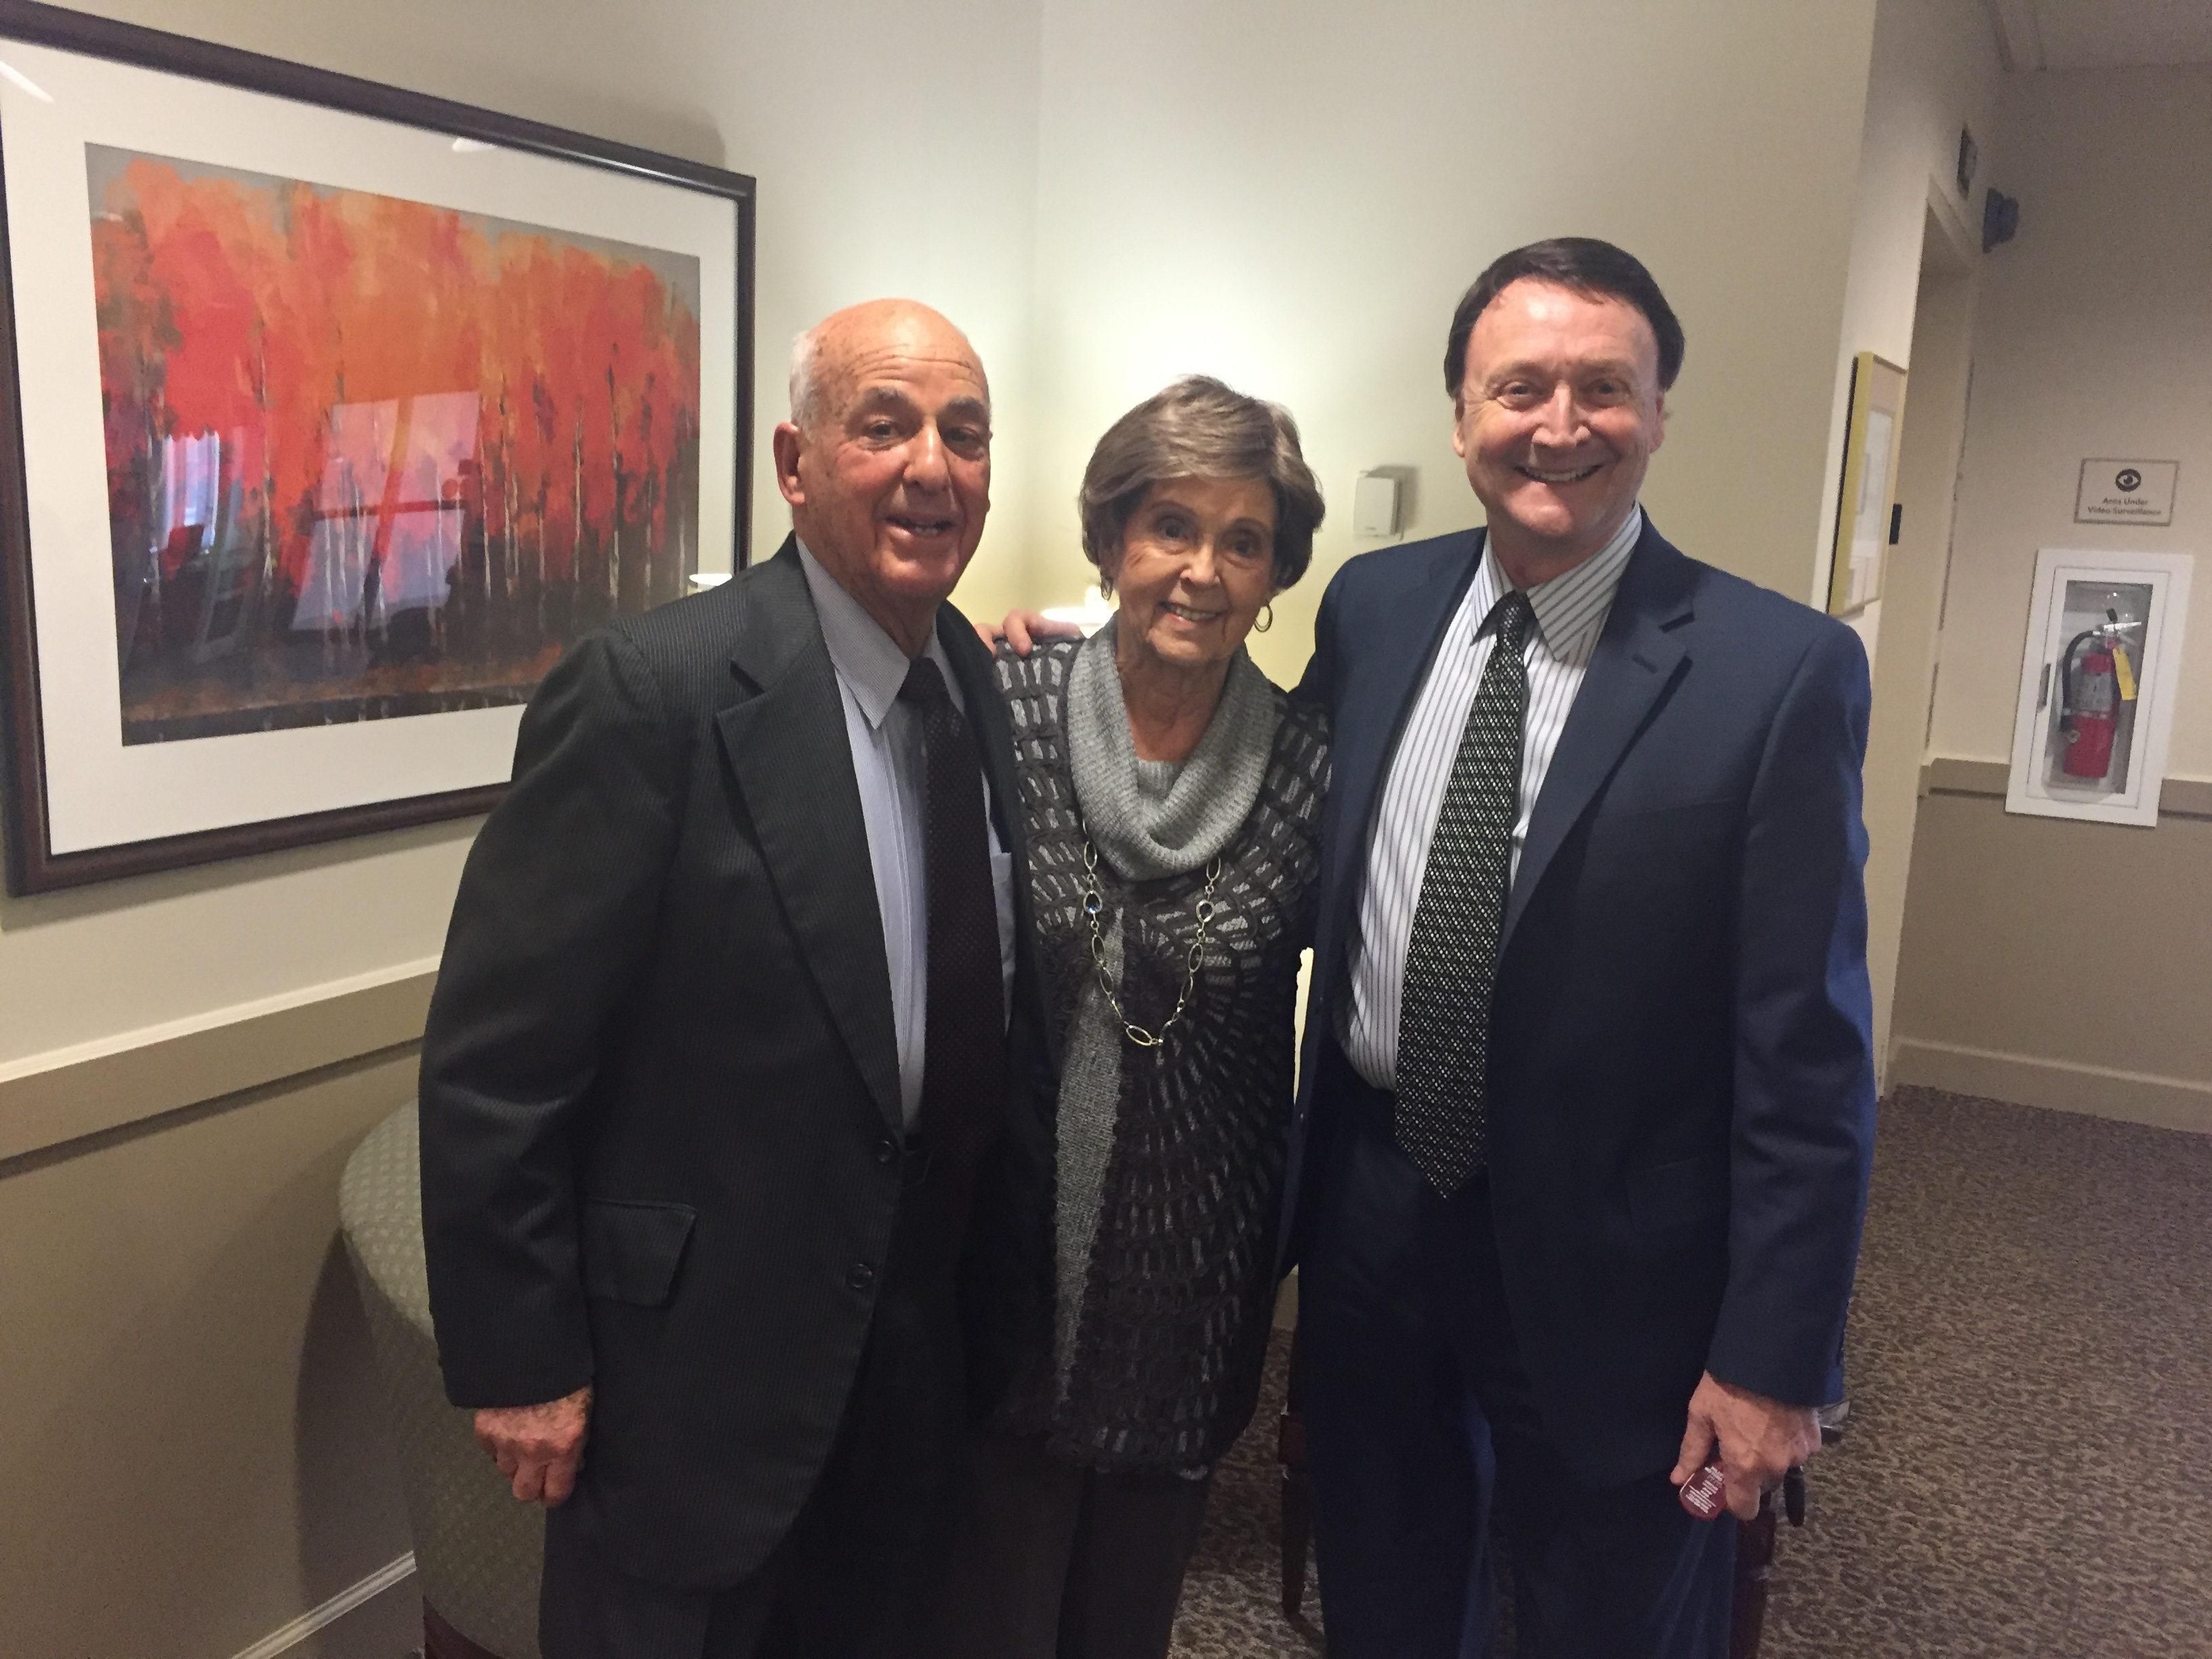 Dr. Cyril Wecht, Aunt Thelma Piatt and Tim Warco